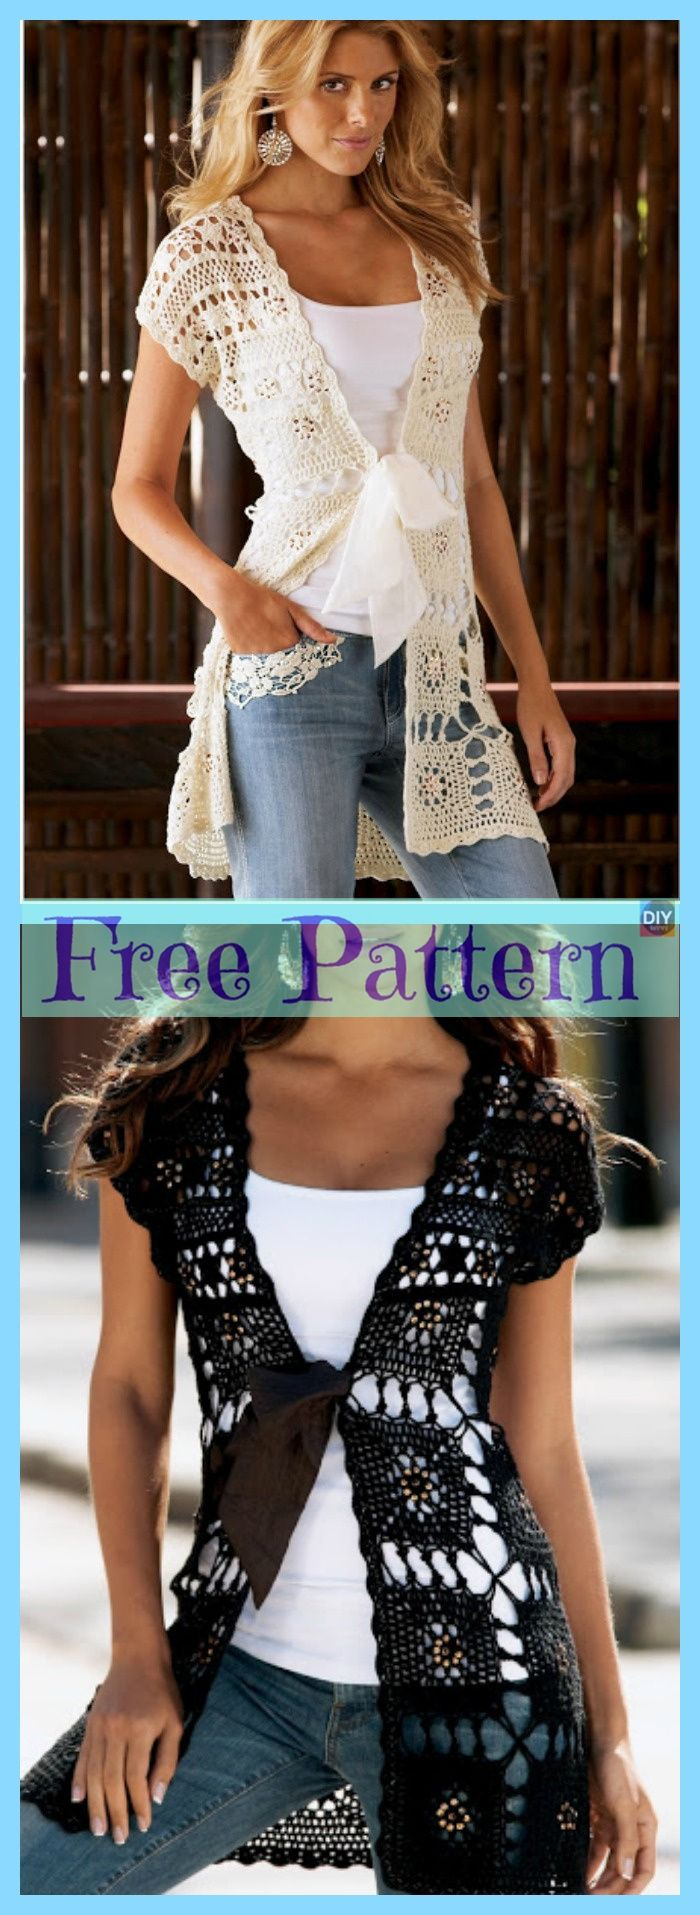 Crochet Lace Summer Tops – Free Patterns – DIY 4 EVER